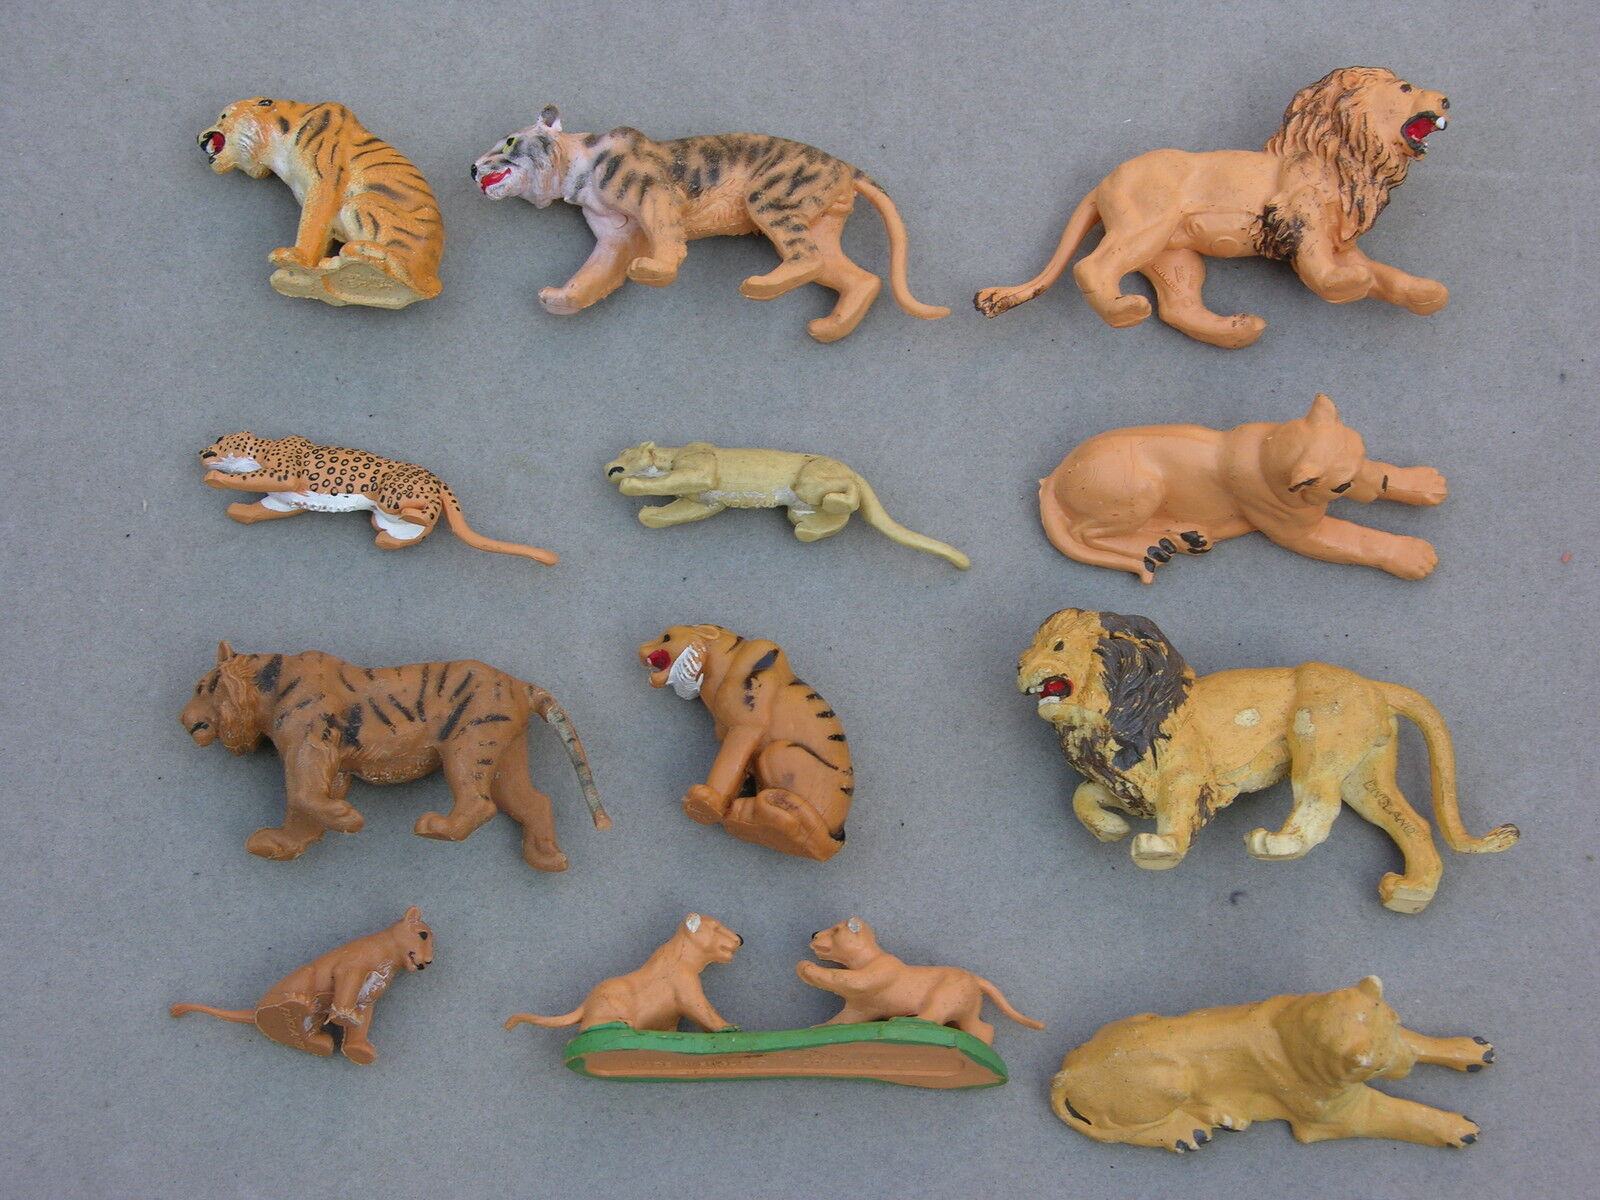 BRITAINS ZOO COLLECTION, BIG CATS SELECTION MULTI-LISTING